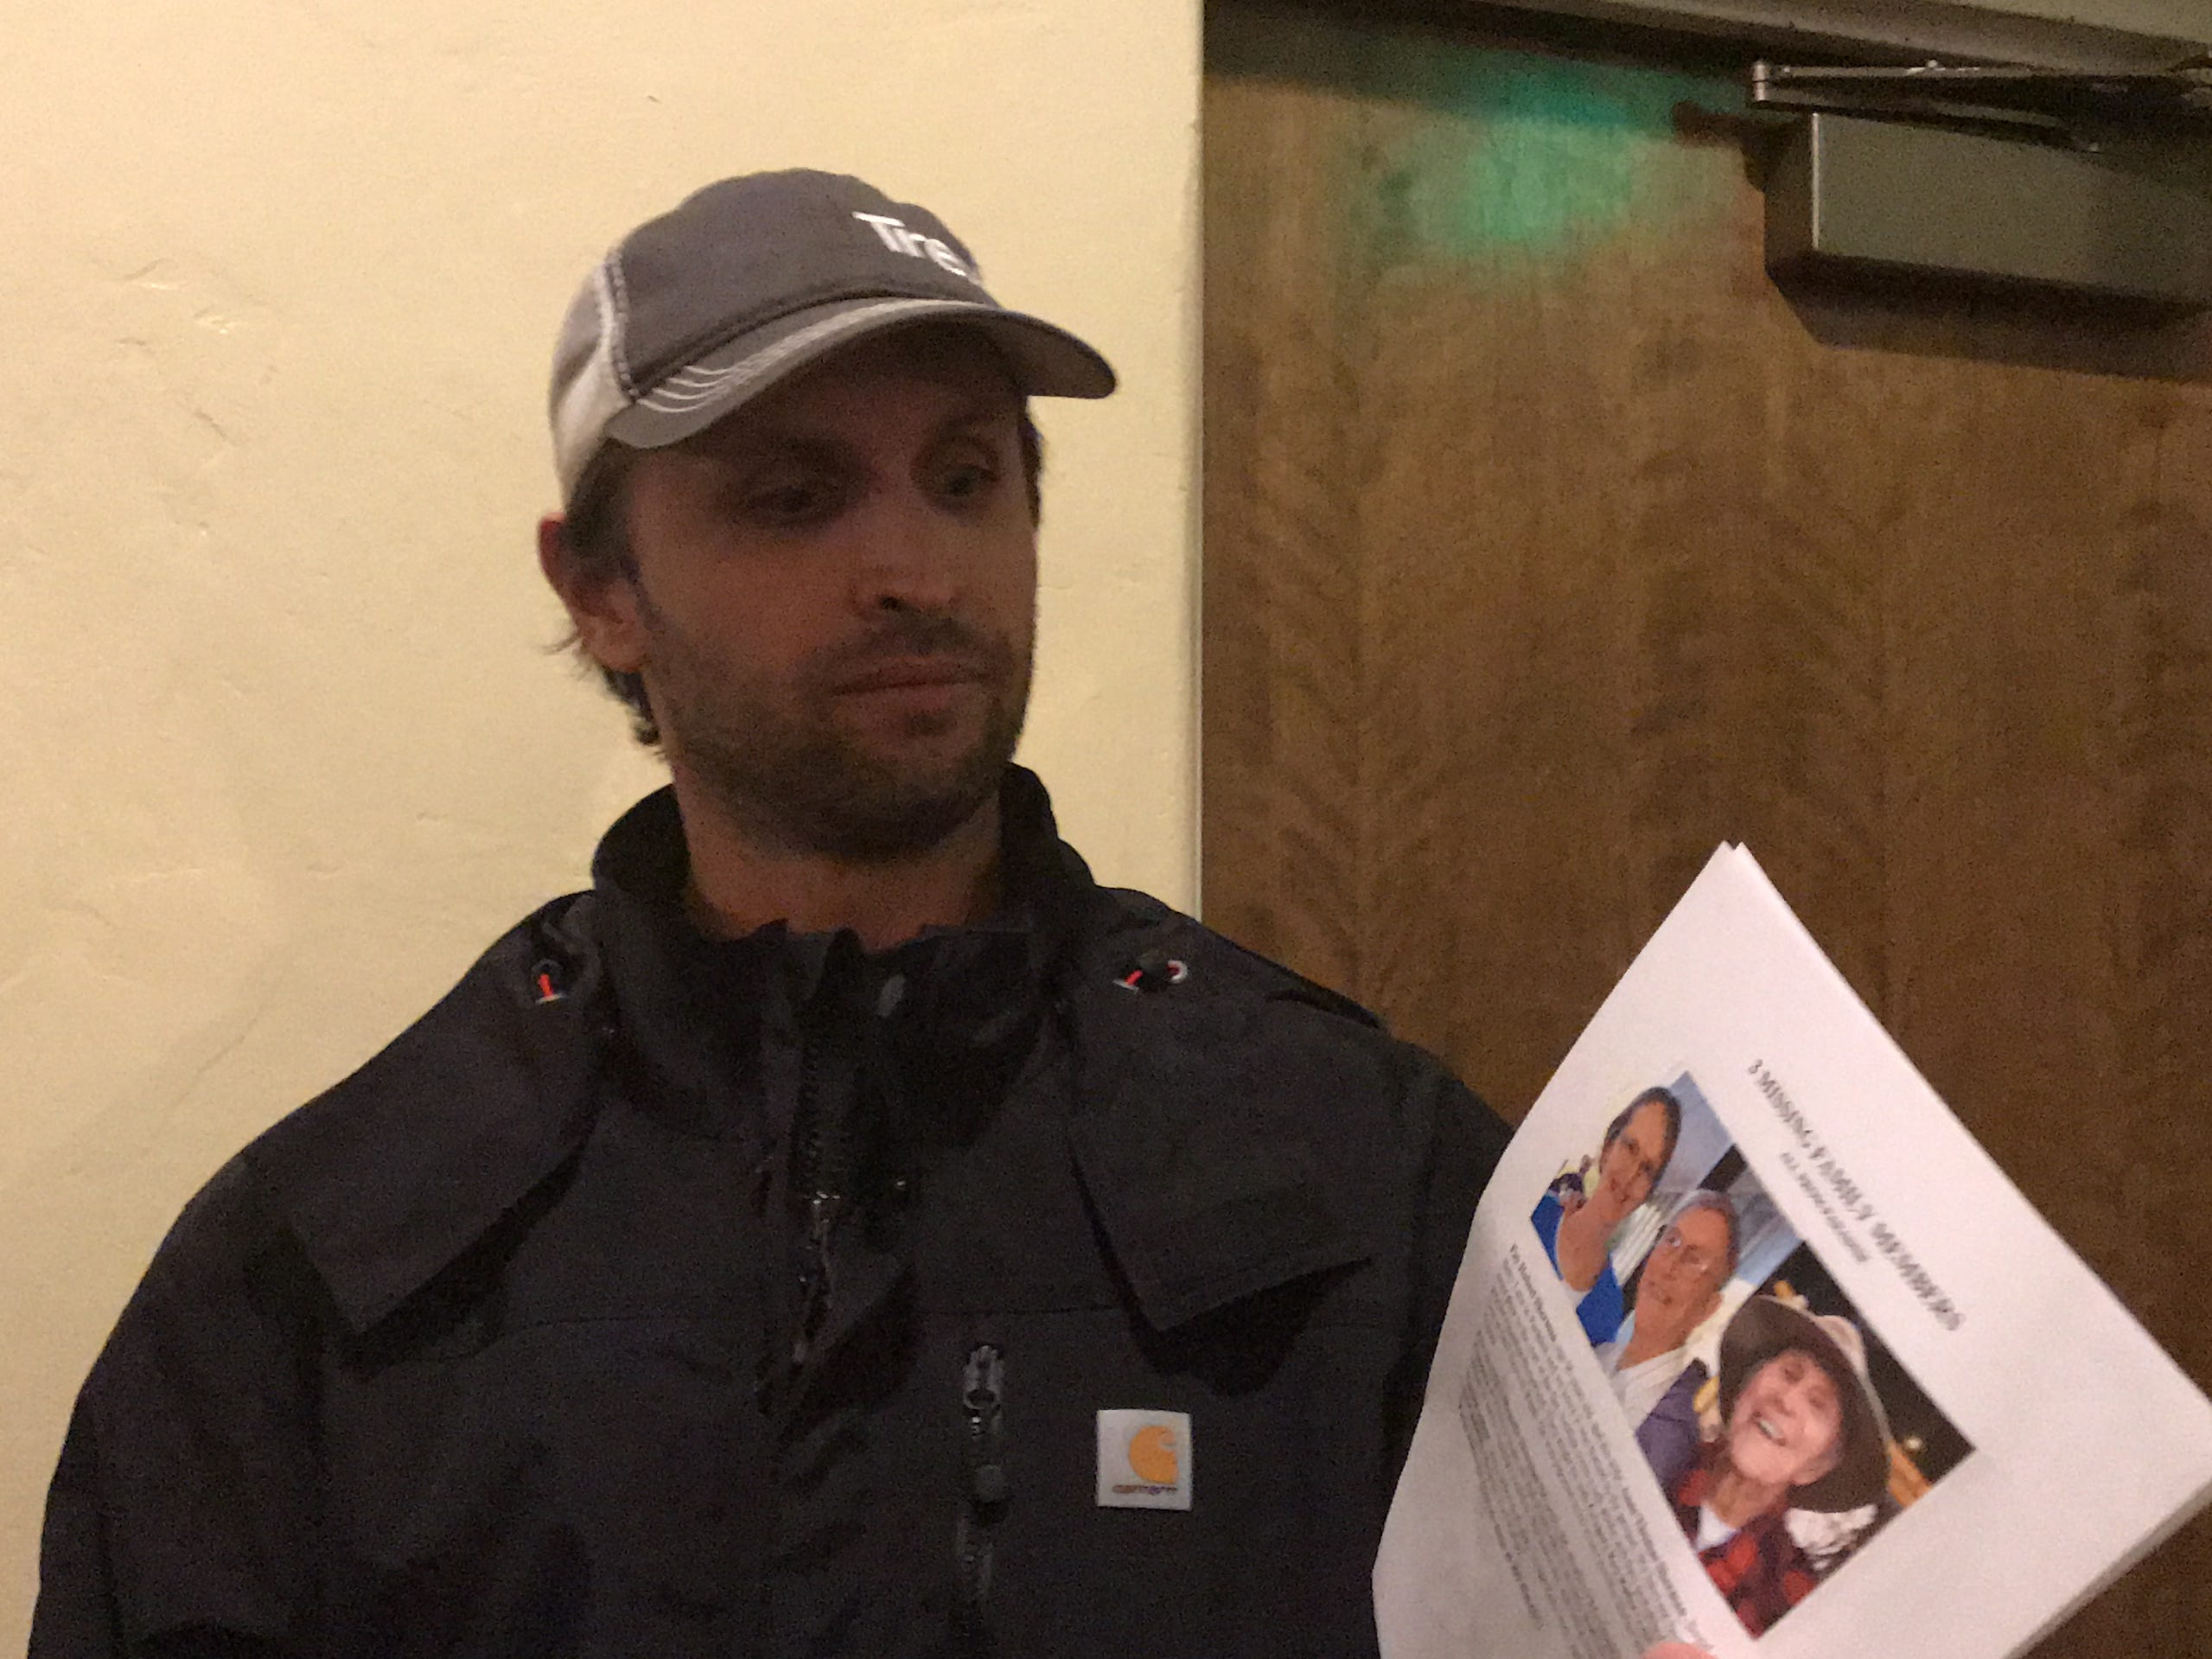 John Warner holds the flier his family made with photos of his missing grandparents.